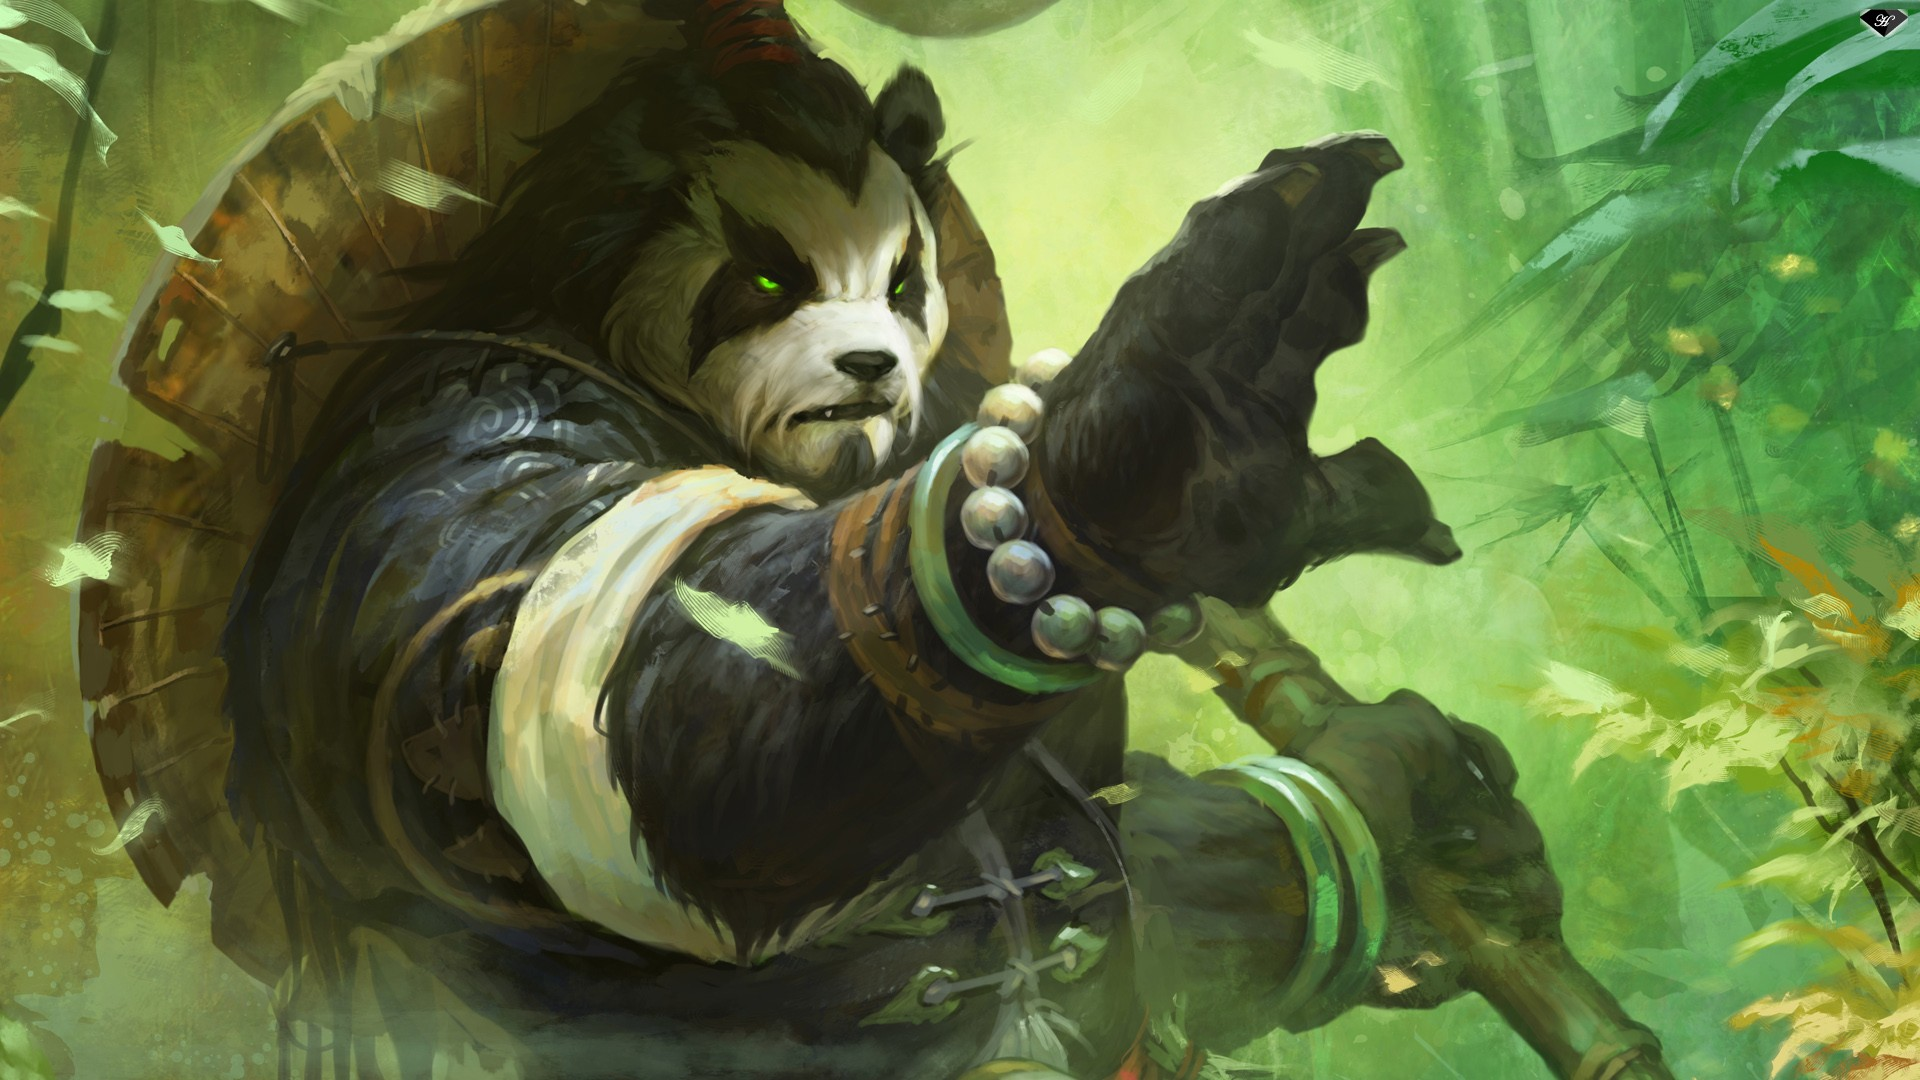 Kung Fu Panda World Of Warcraft Mists Of Pandaria Chen Stormstout